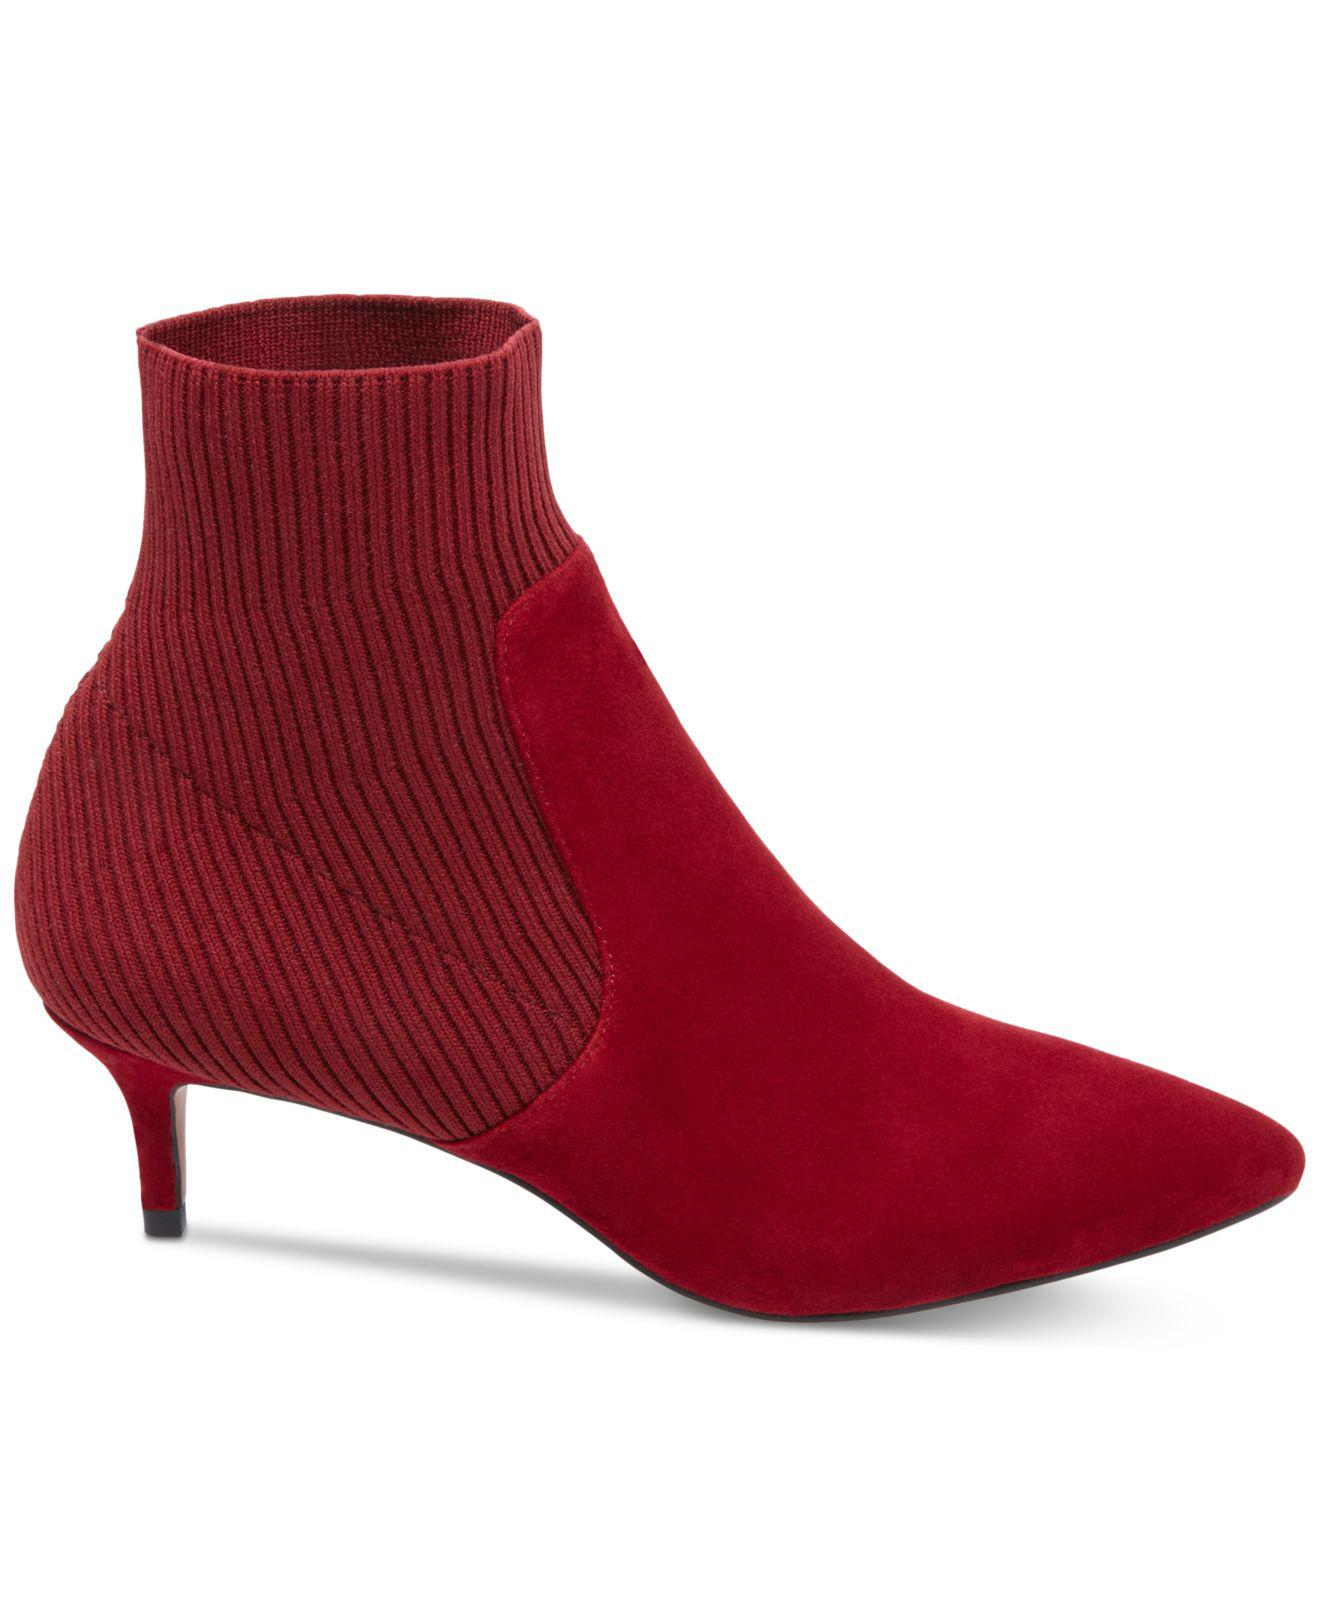 d4627d3a881 Lyst - Steven by Steve Madden Kagan Stretch Kitten-heel Booties in Red -  Save 66%